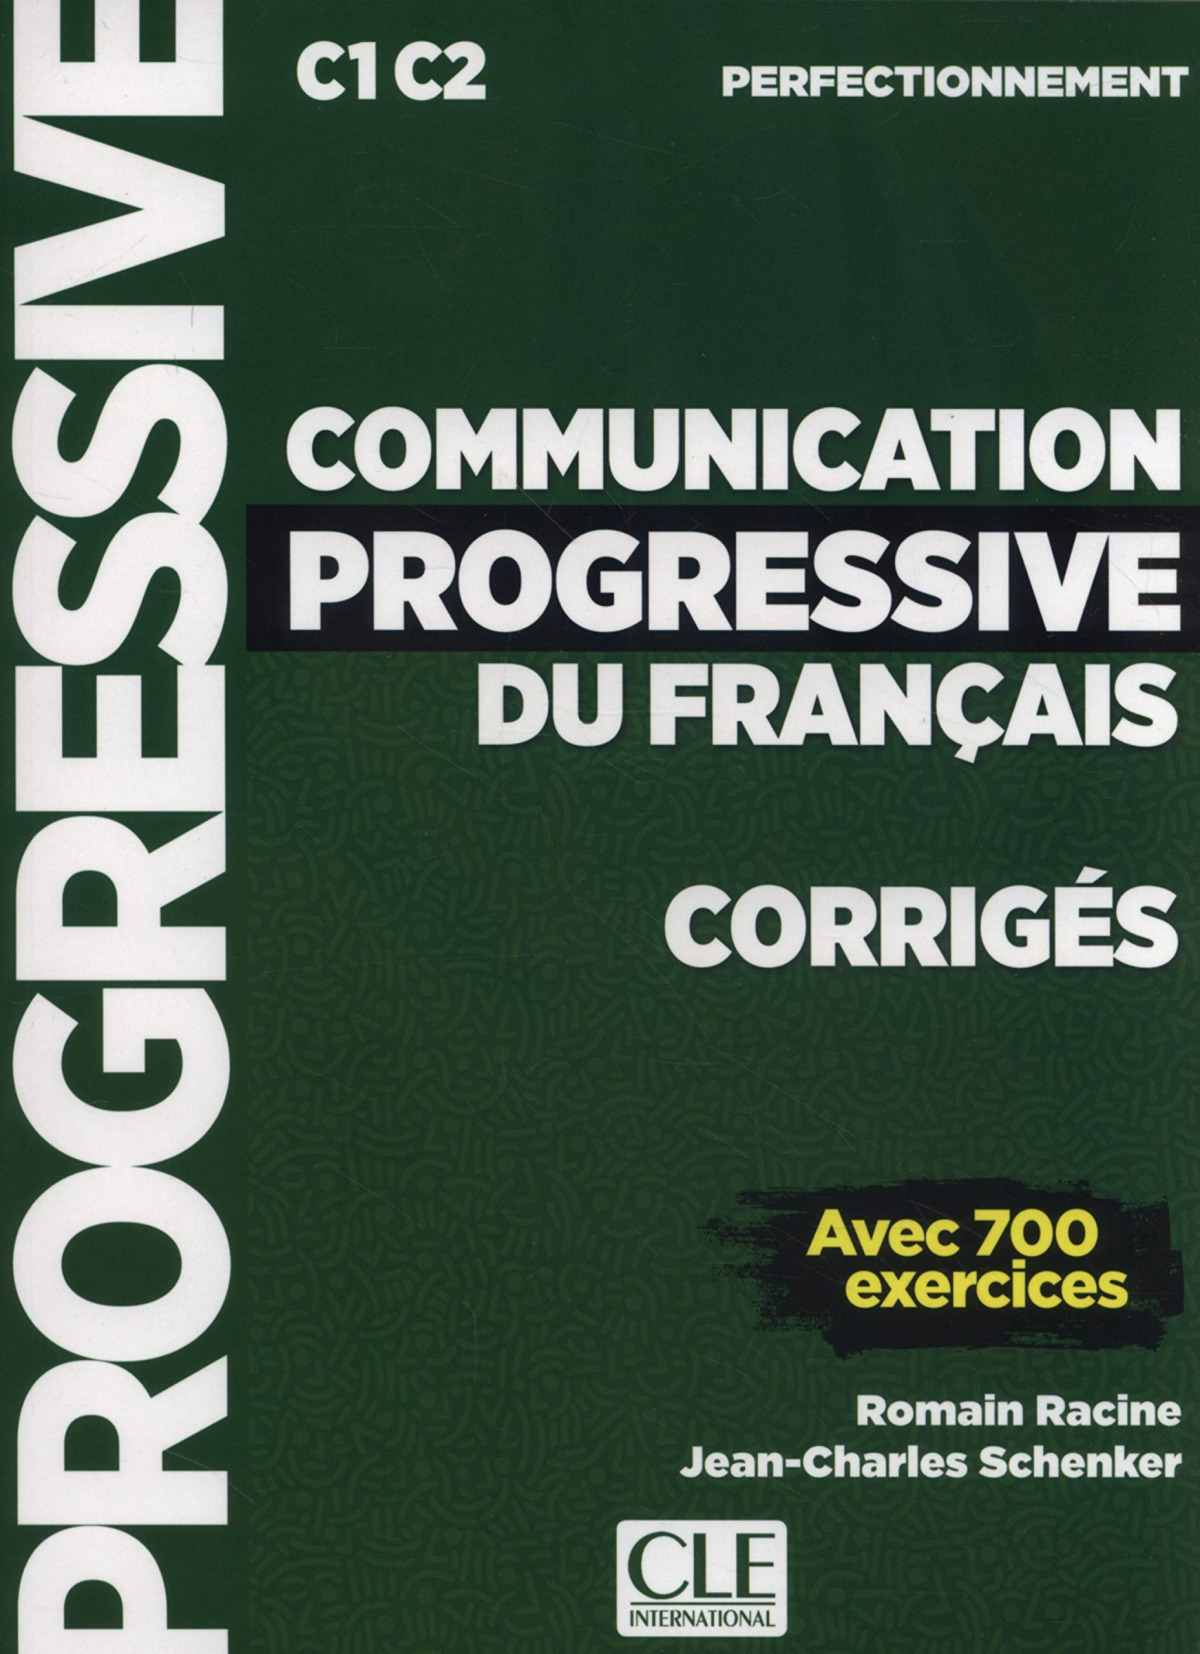 (PERFECTIONNAMENT).COMMUNICATION PROGESSIVE FRANÇAIS.(C1-C2